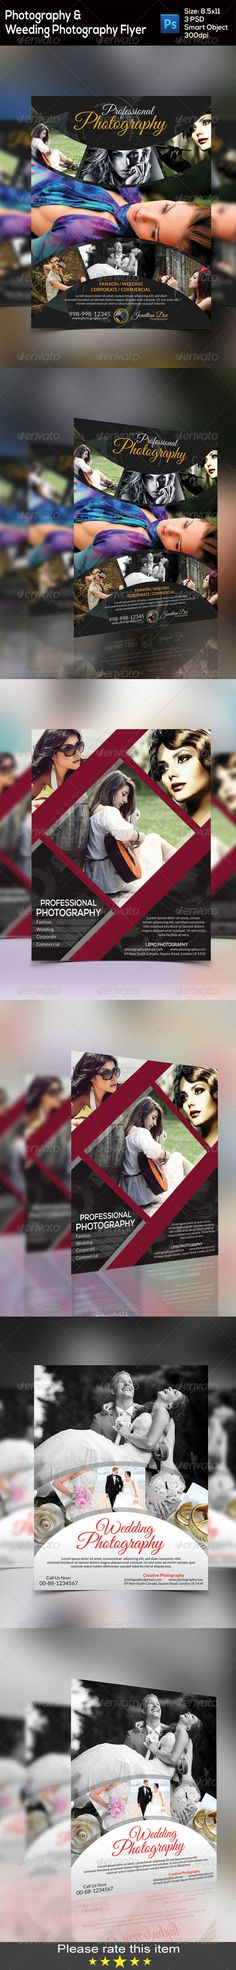 Hair Salon Fashion Style Business Flyer Business Flyers Salons And Business